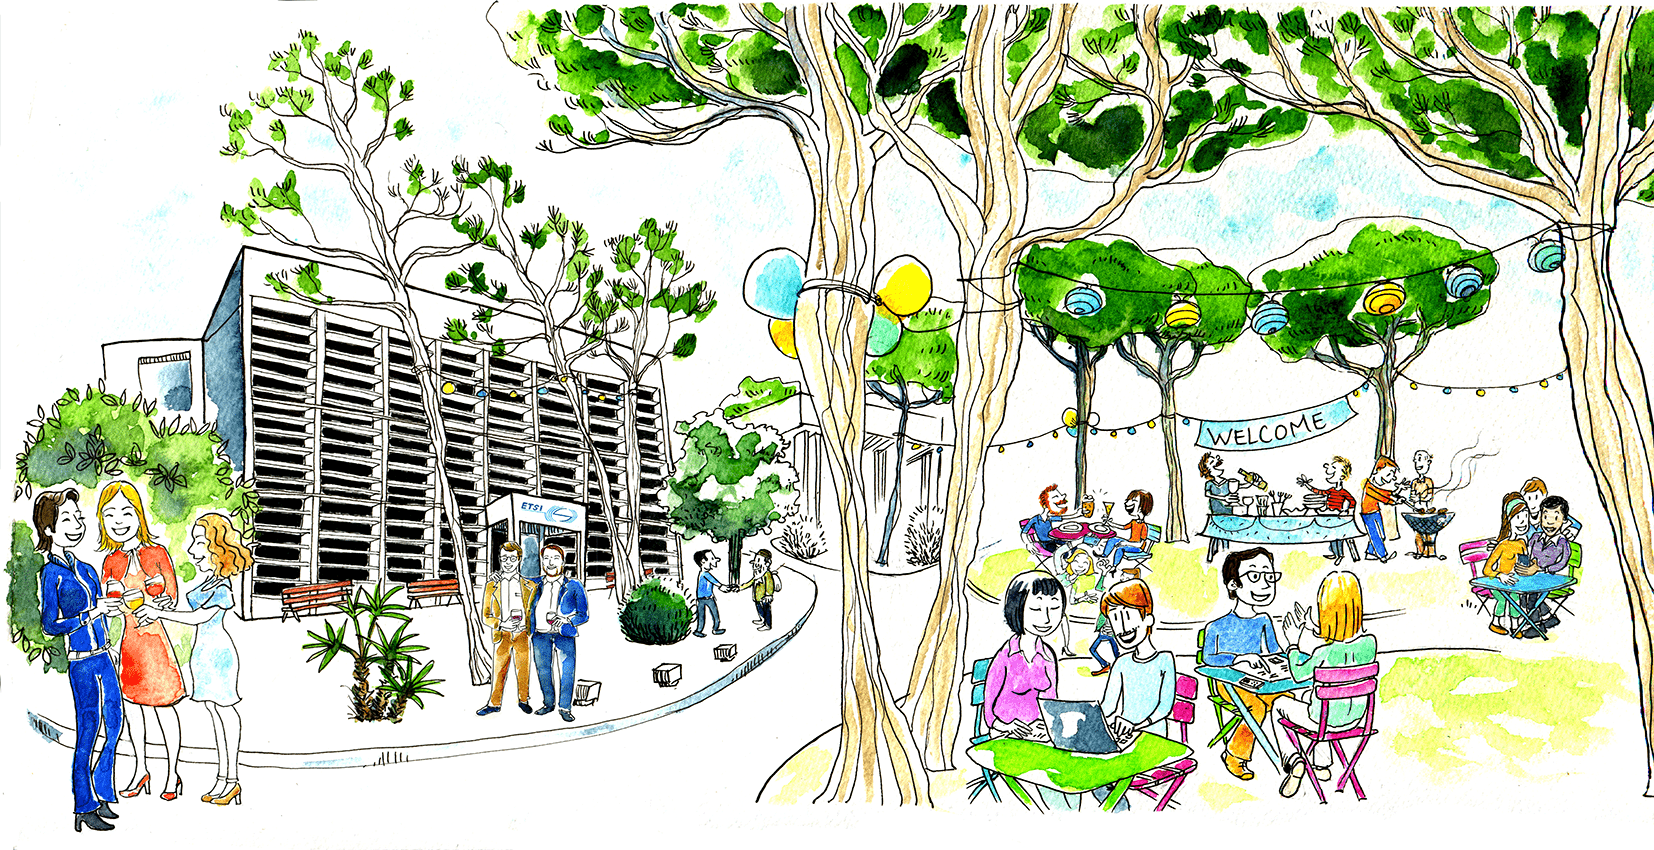 Drawing of neighbours day with people holding food & drinks talking together before the ETSI building